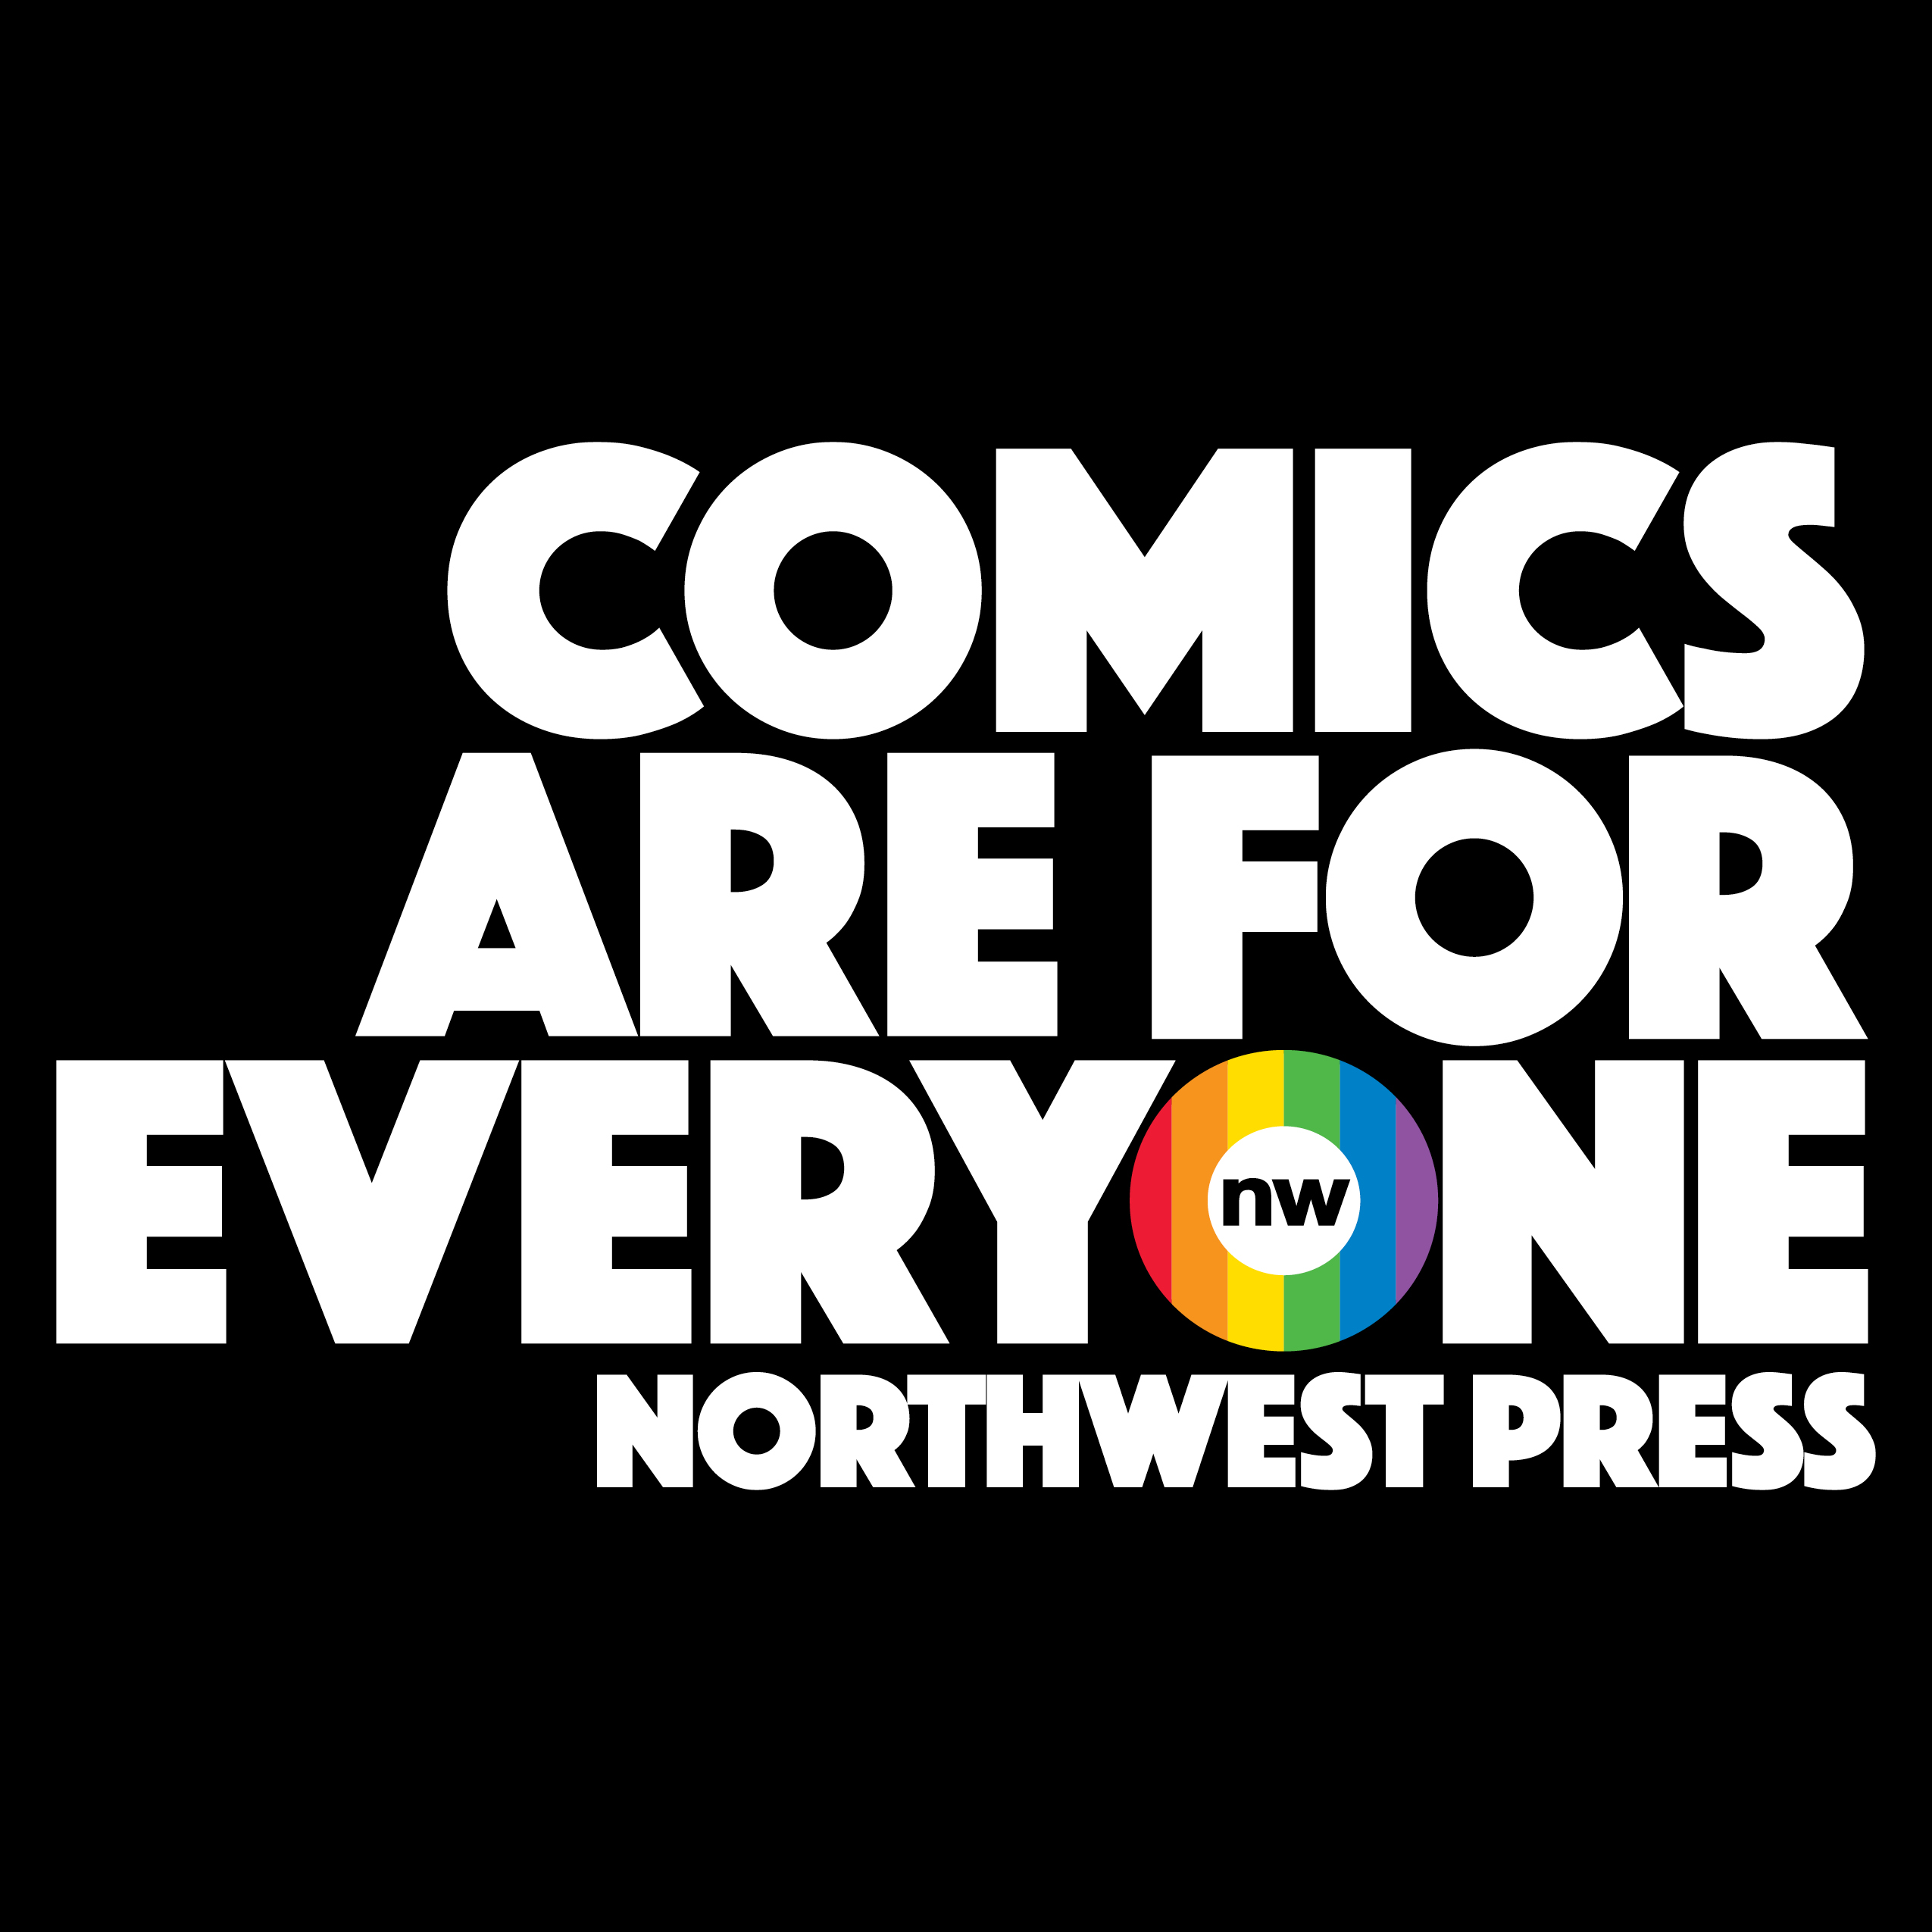 Comics%20are%20for%20everyone%20lockup%20tall%20right%20justified%202015%20cmyk%20white